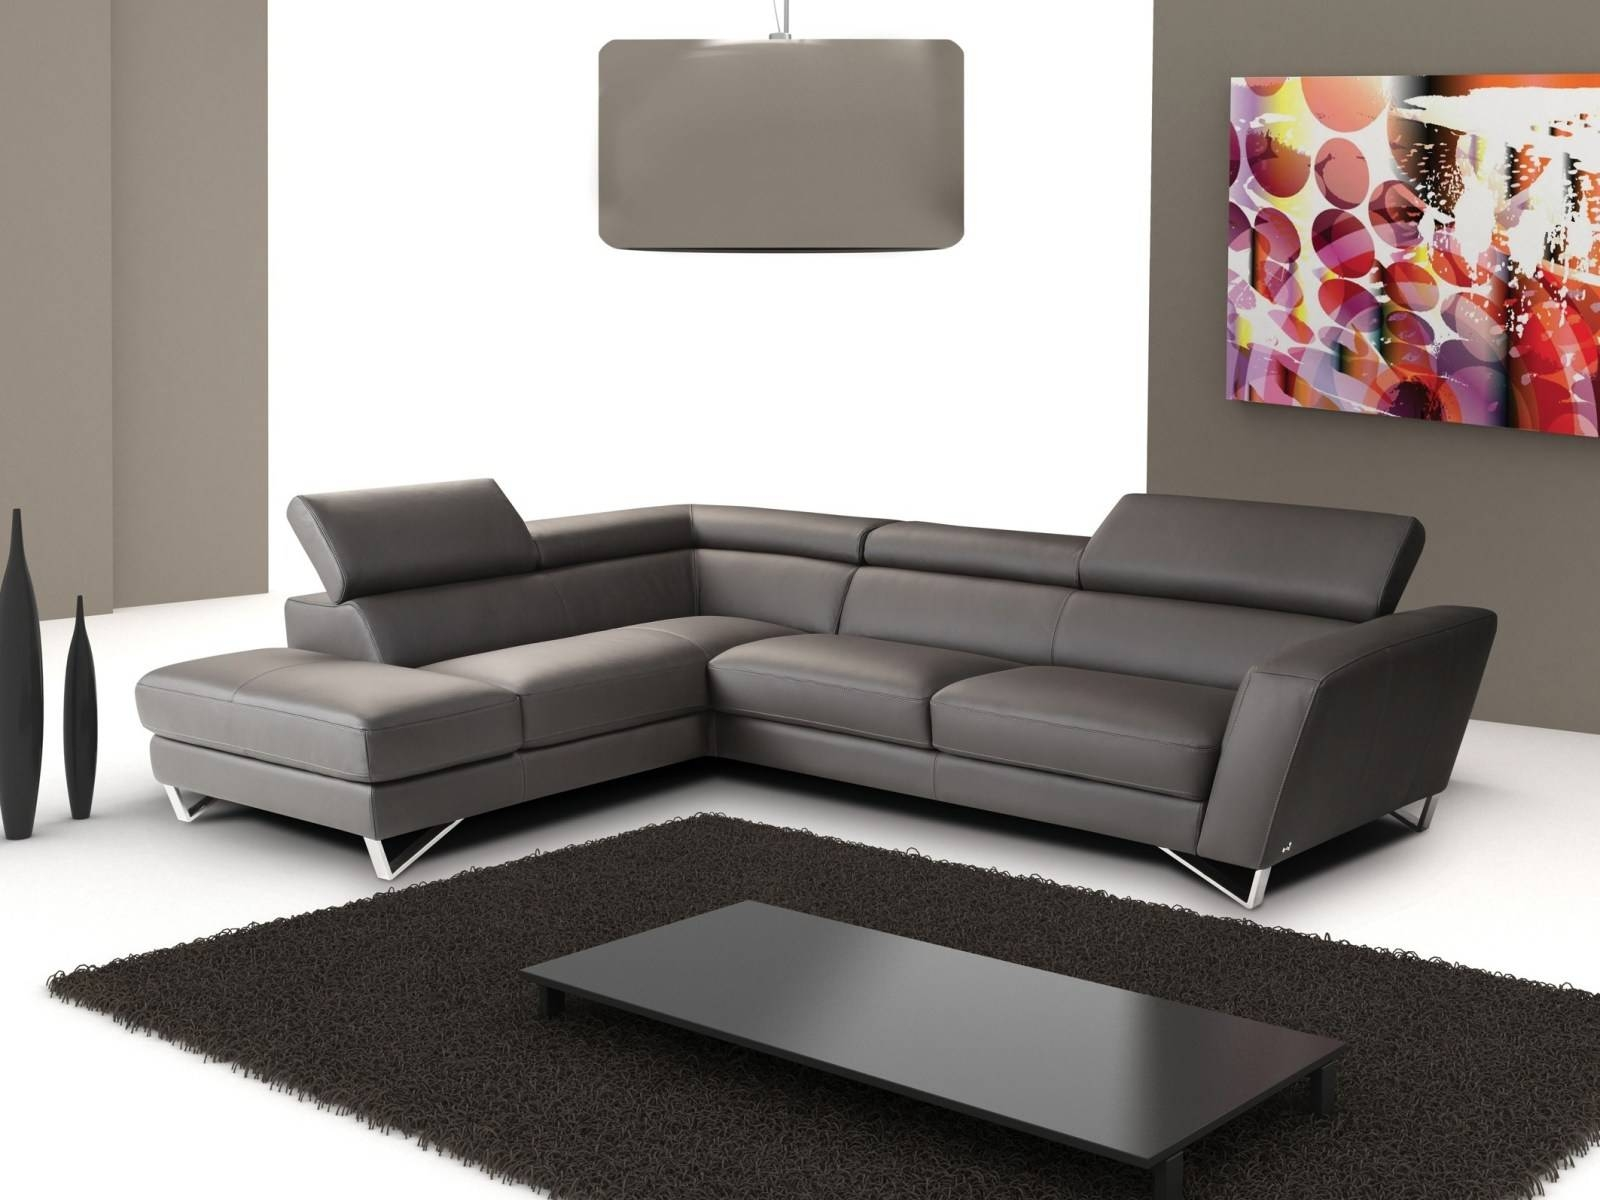 Best 30 of Apartment Size Sofas and Sectionals